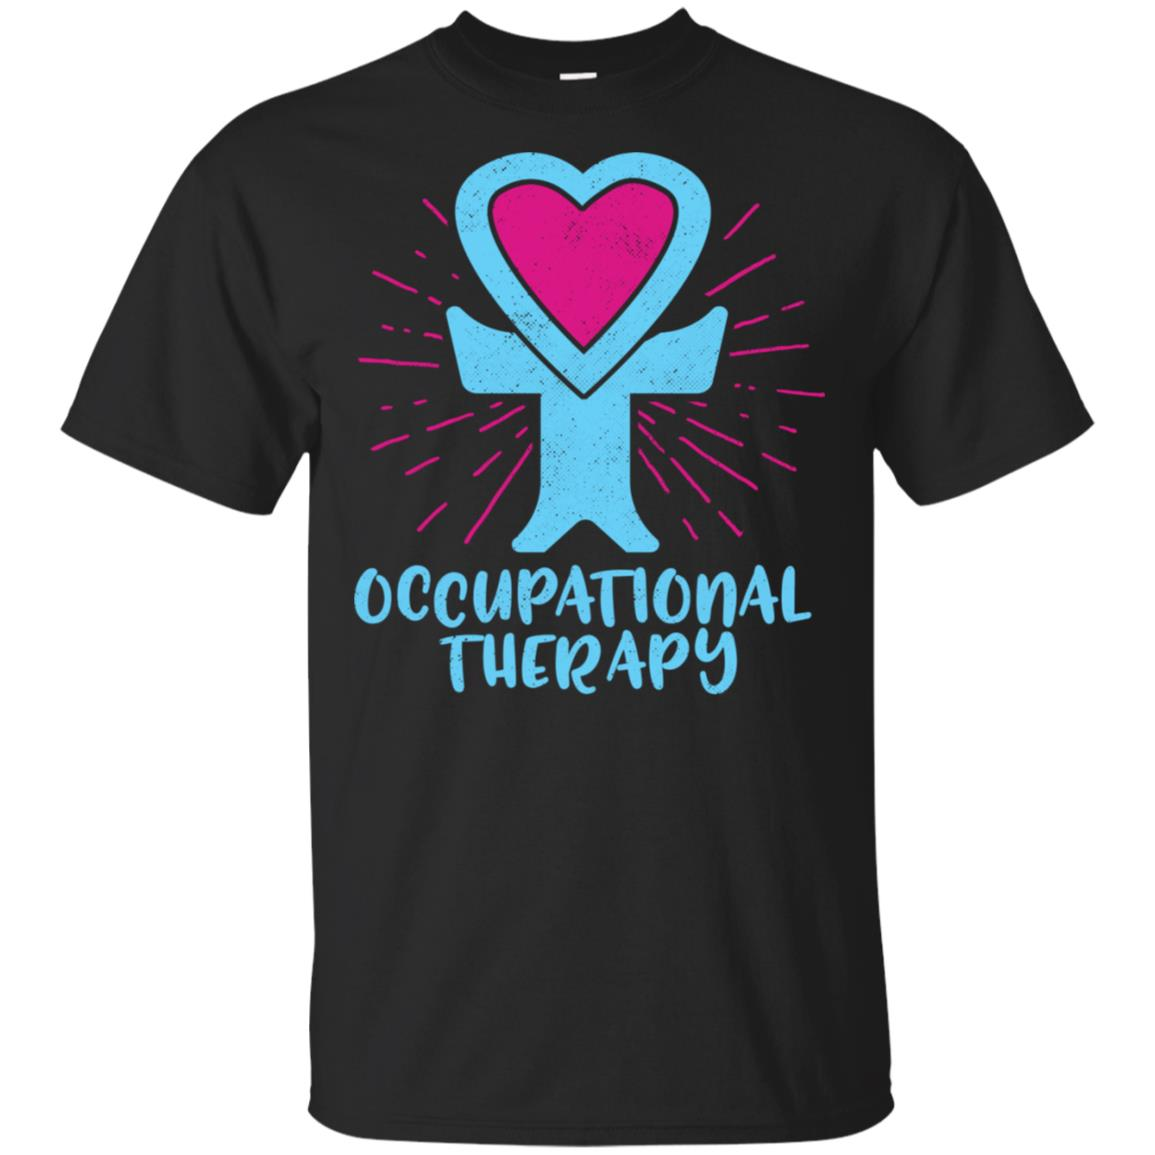 Occupational Therapy Ot Gifts Therapist-3 Unisex Short Sleeve